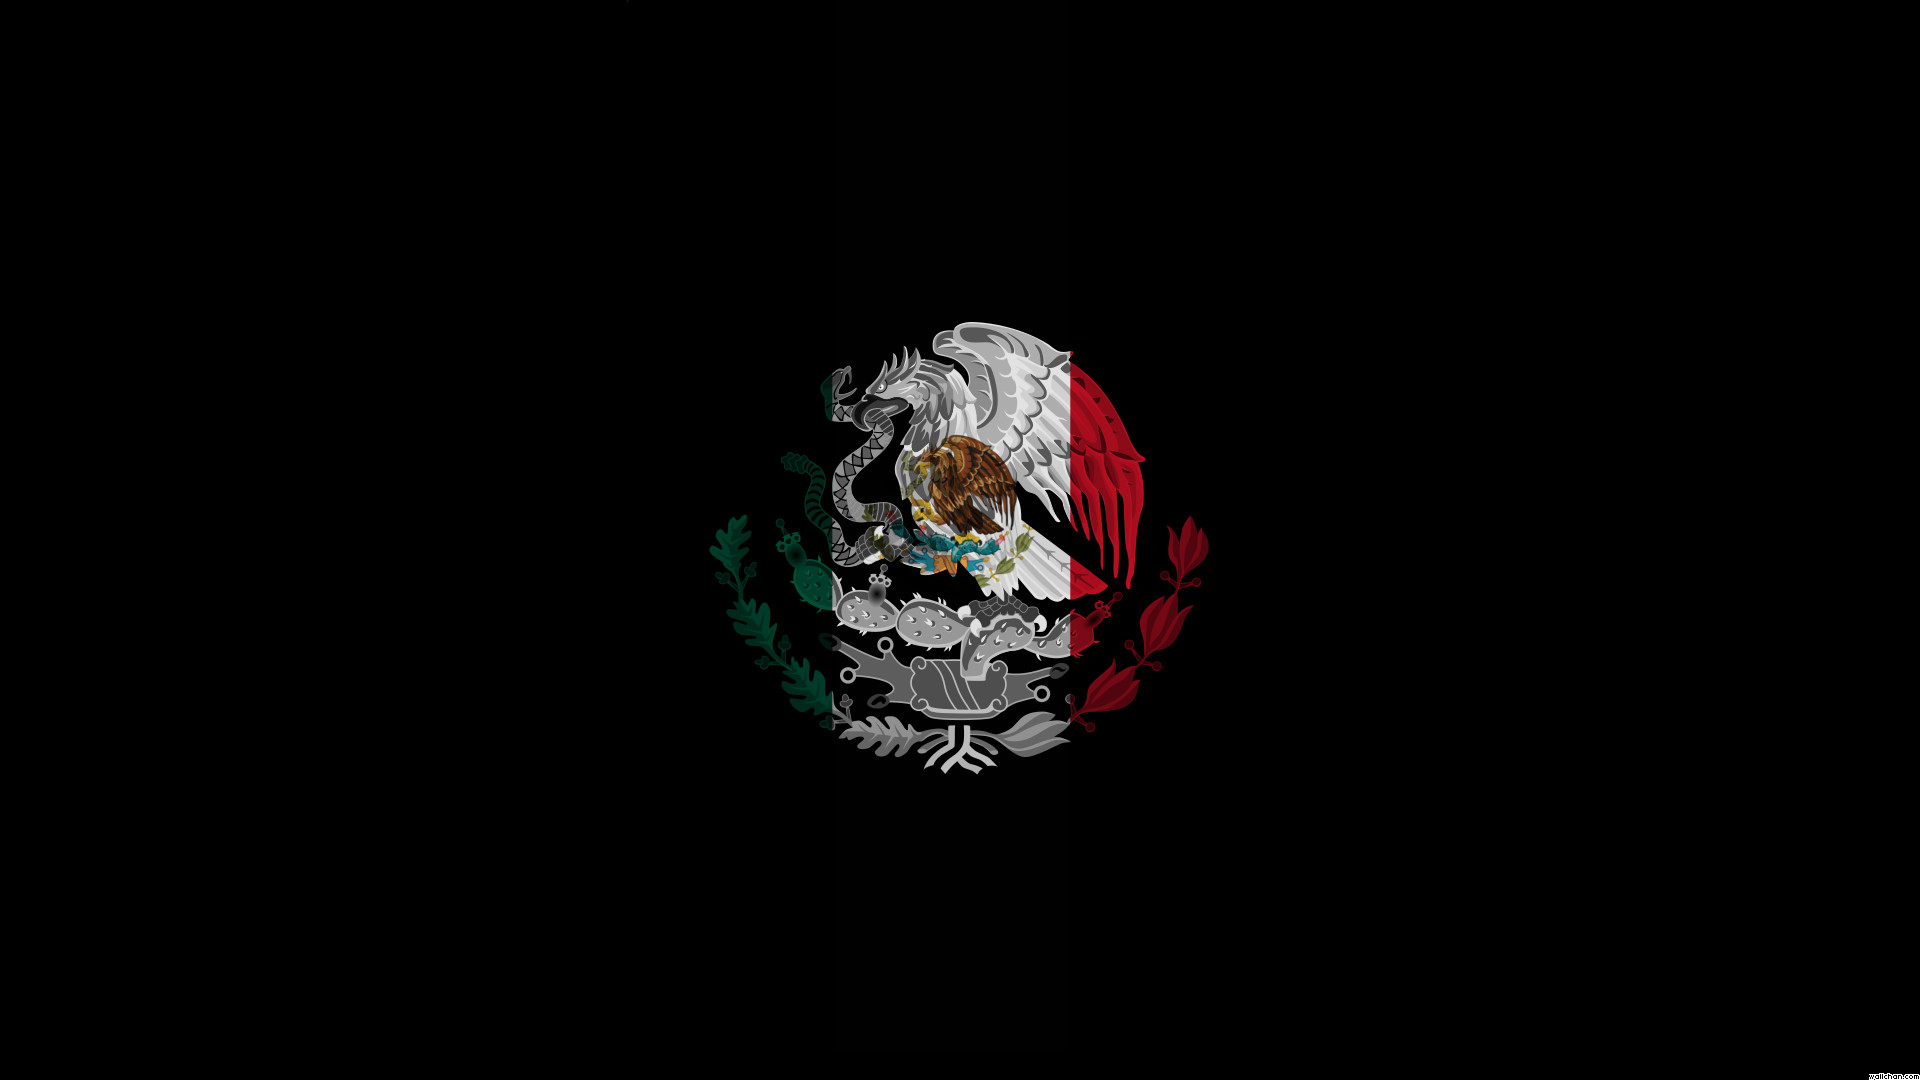 … wallpapers mexico 63 wallpapers wallpapers and backgrounds …